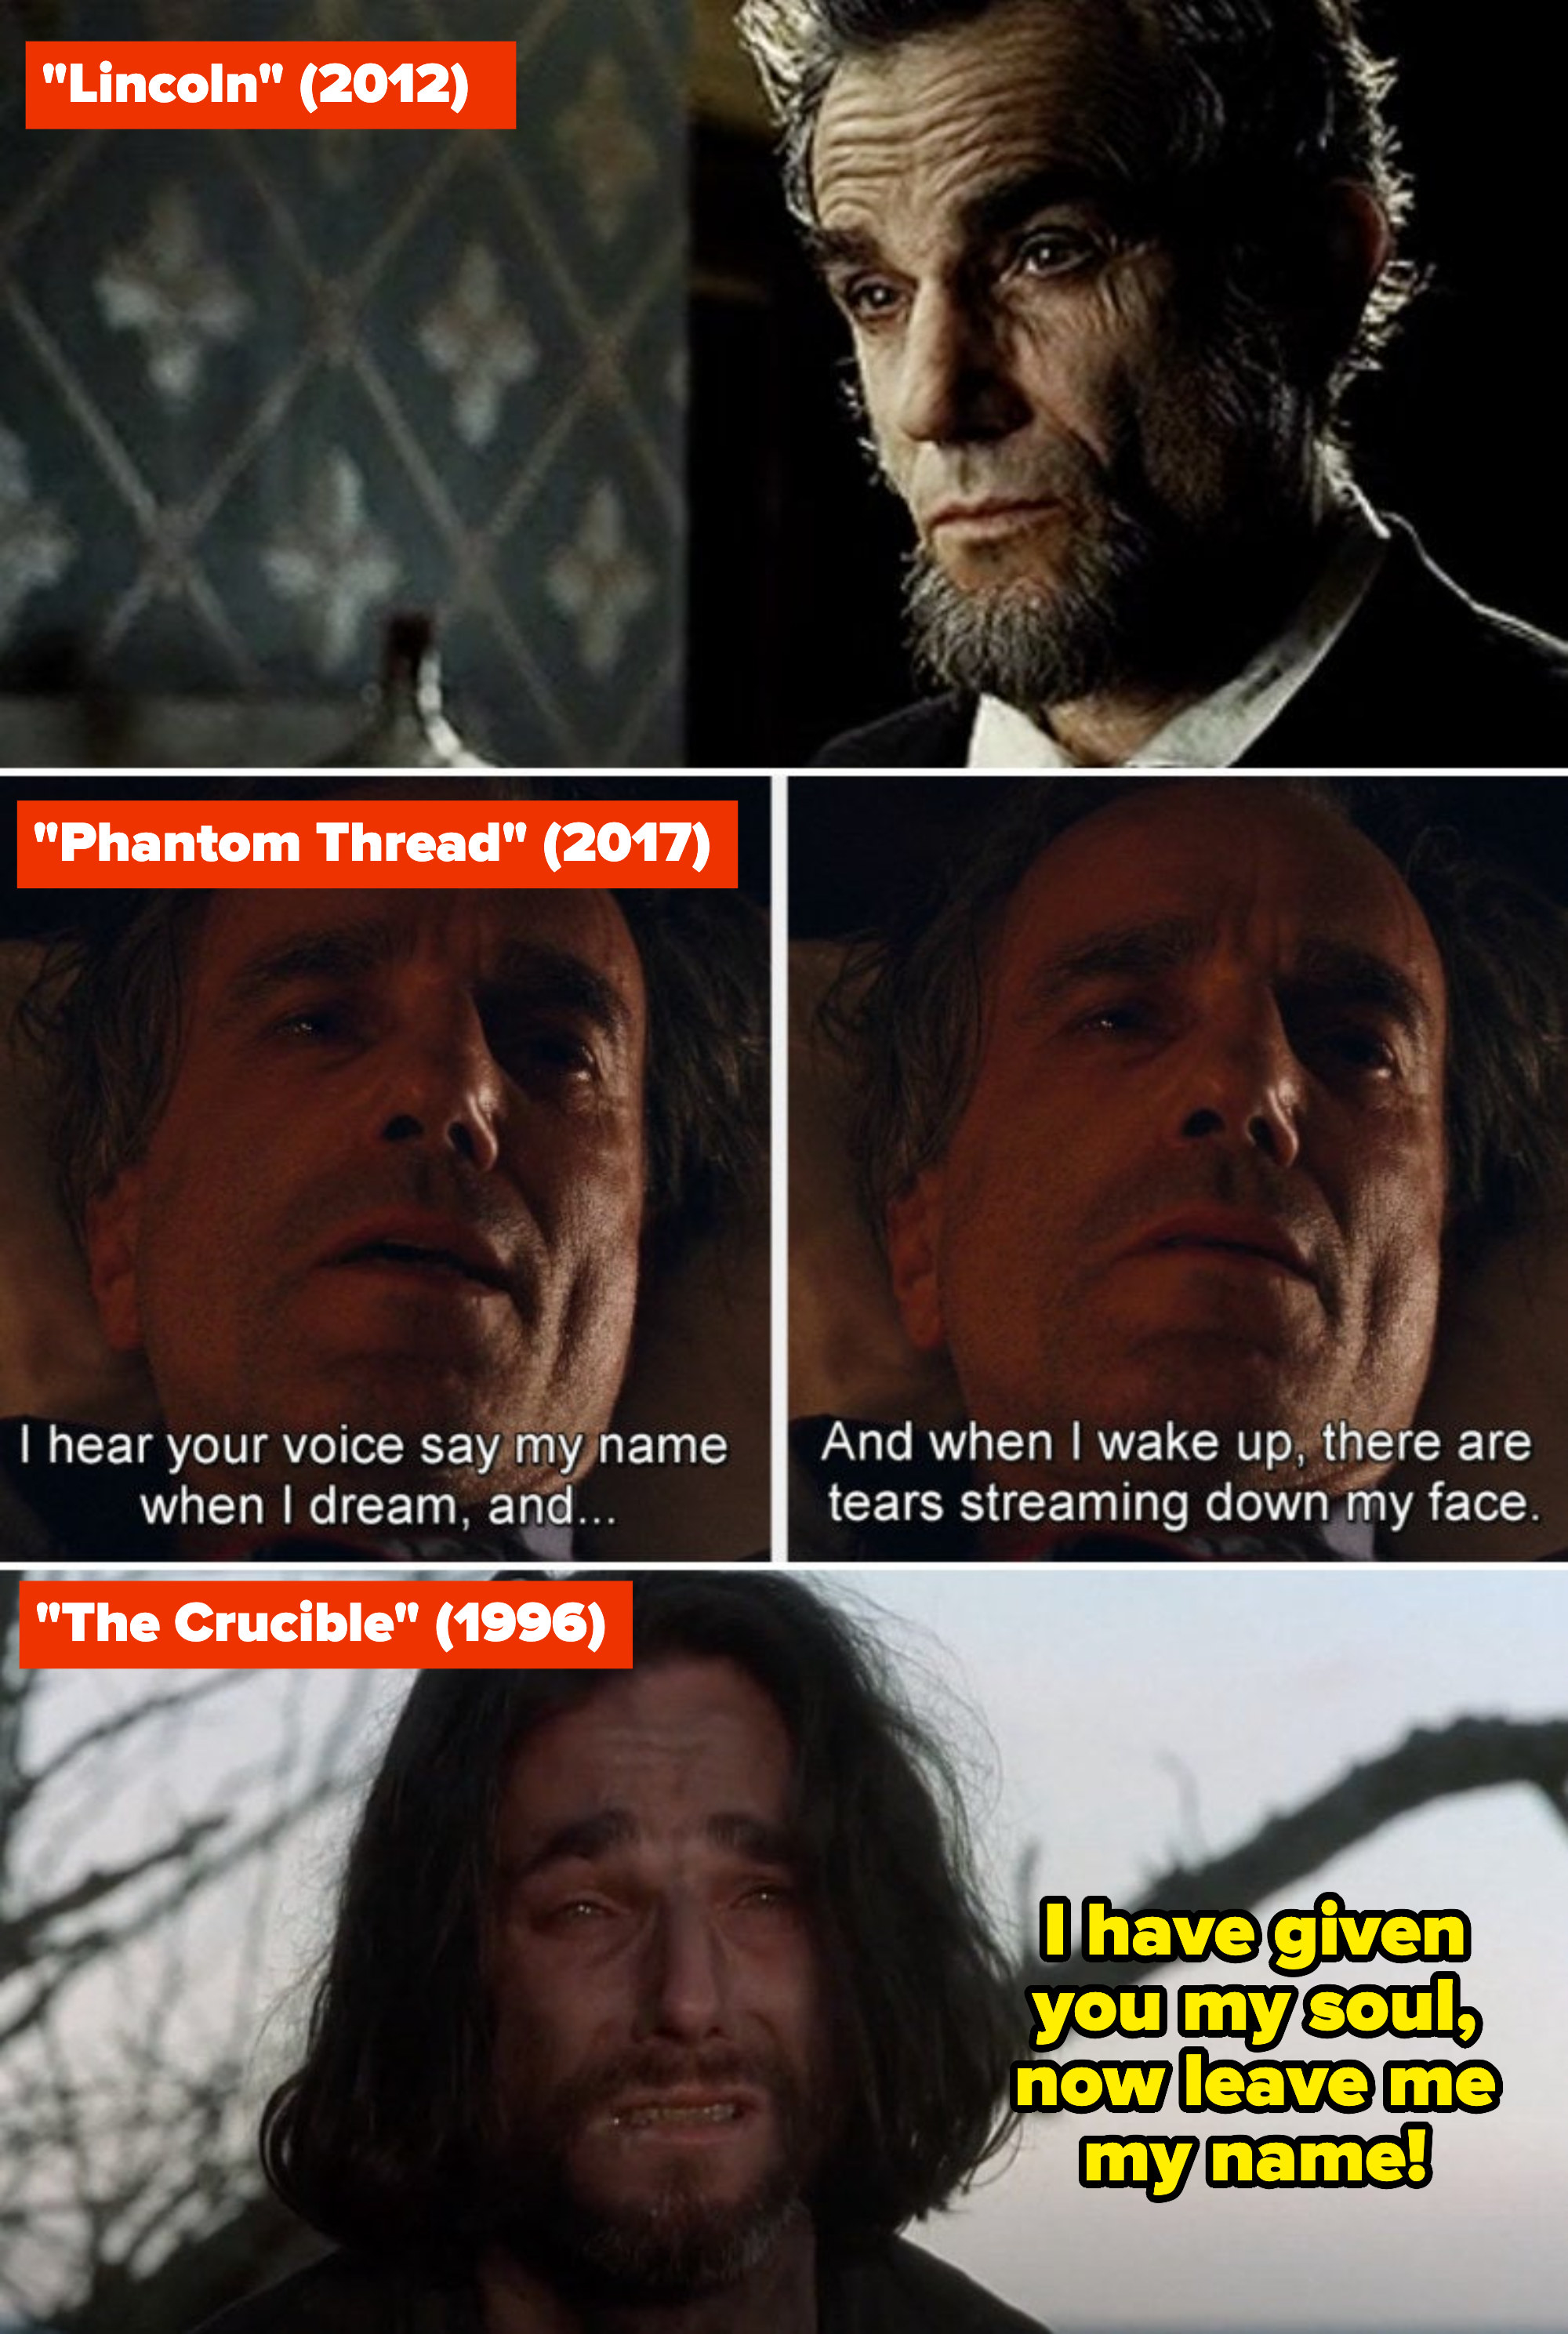 """Daniel Day-Lewis in """"Lincoln,"""" """"Phantom Thread,"""" and """"The Crucible"""""""